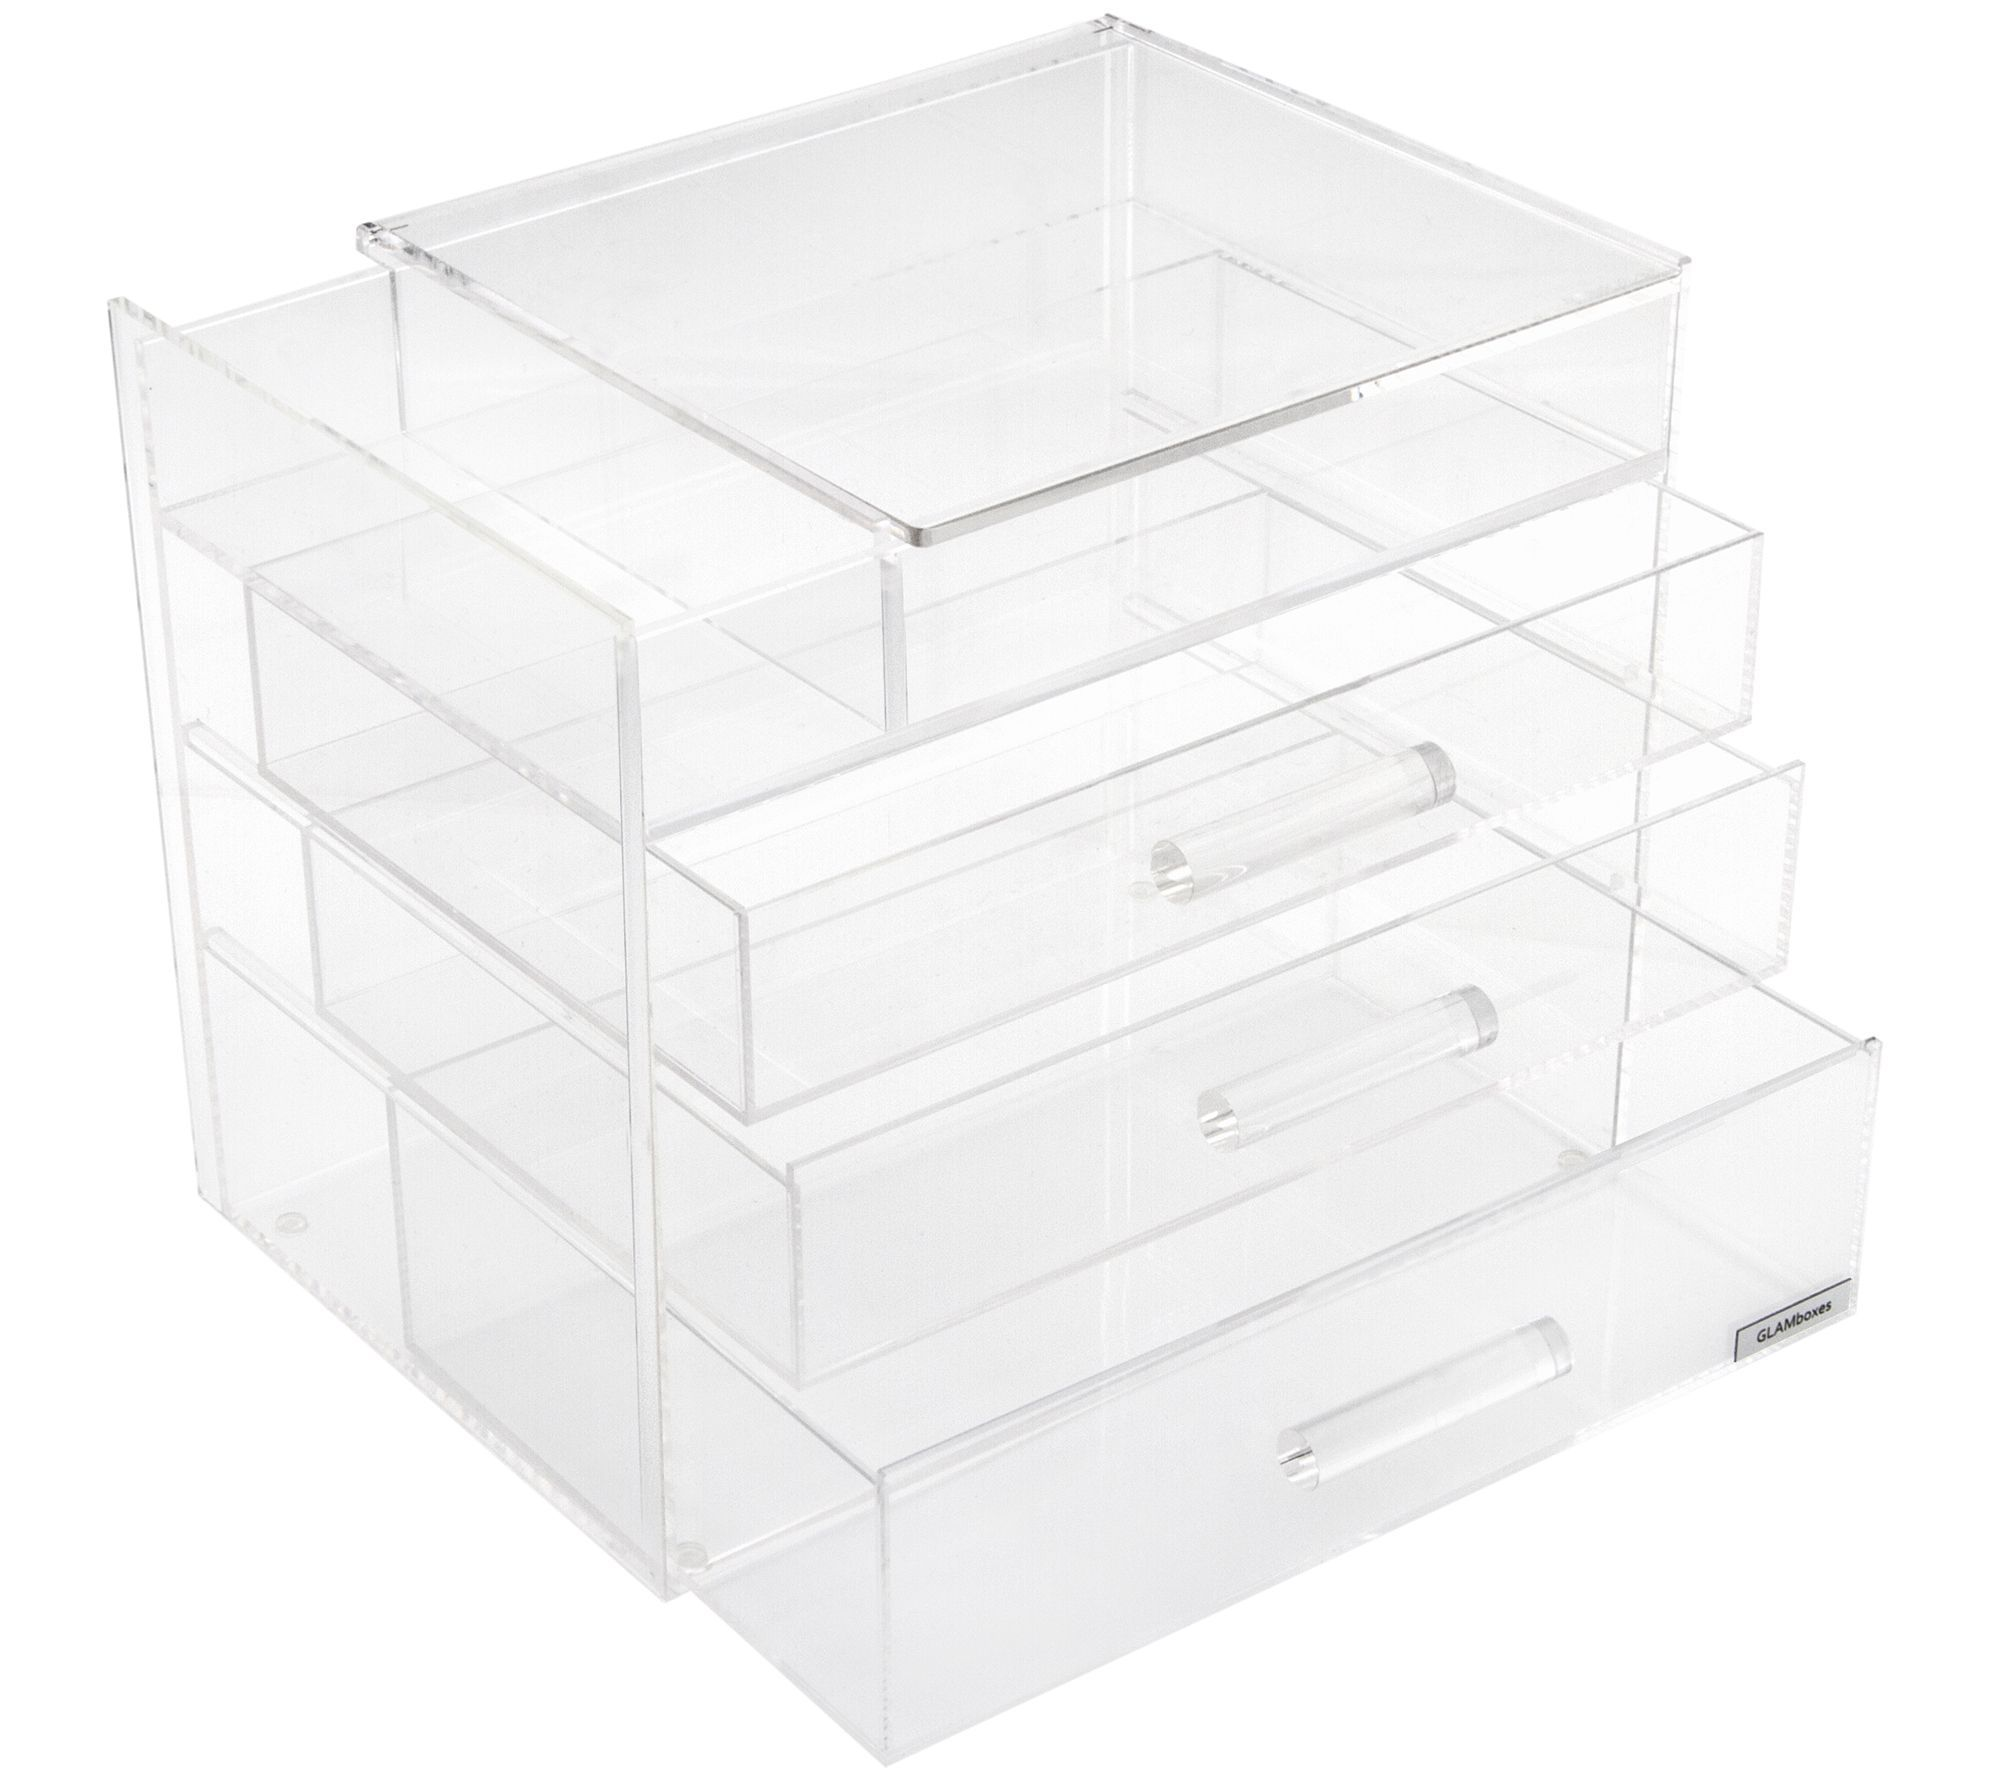 Qvc Makeup Organizer Simple Glamboxes Glampetite Makeup Box With Partiallid  Makeup